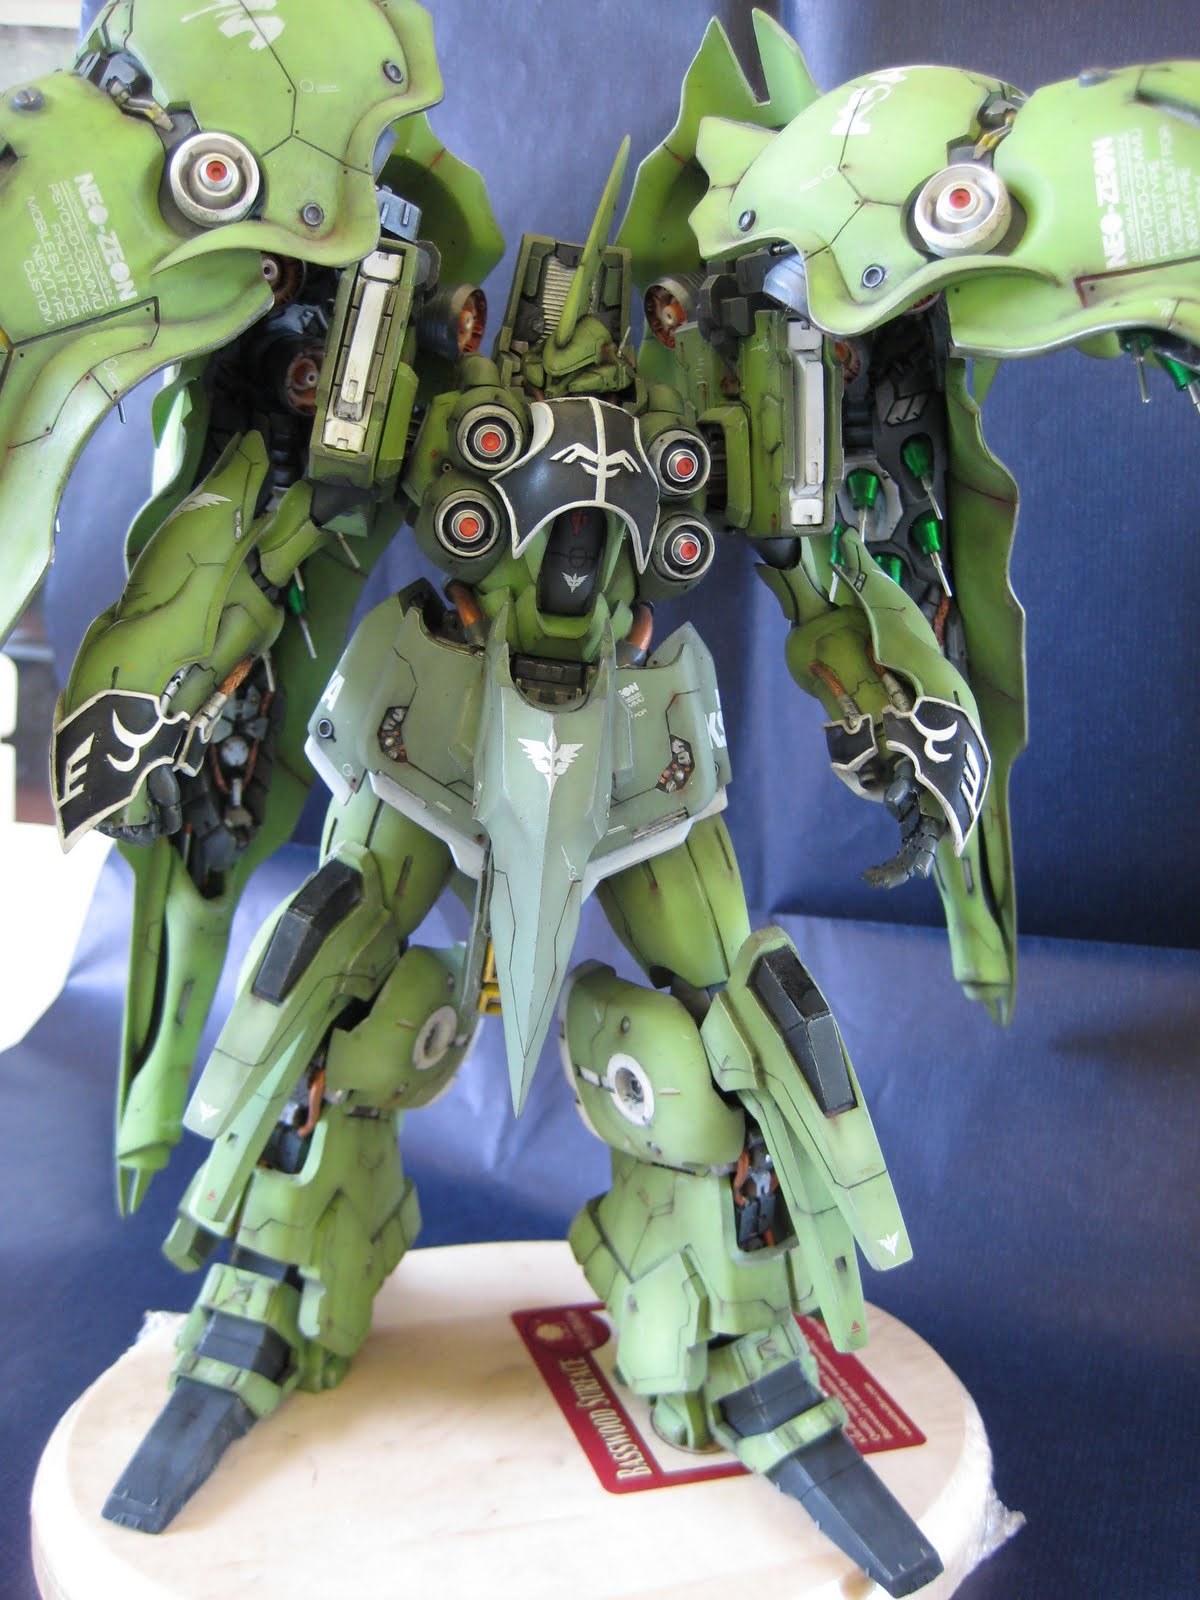 1/100 NZ-666 Kshatriya by aor_or_die | DC23mecharts